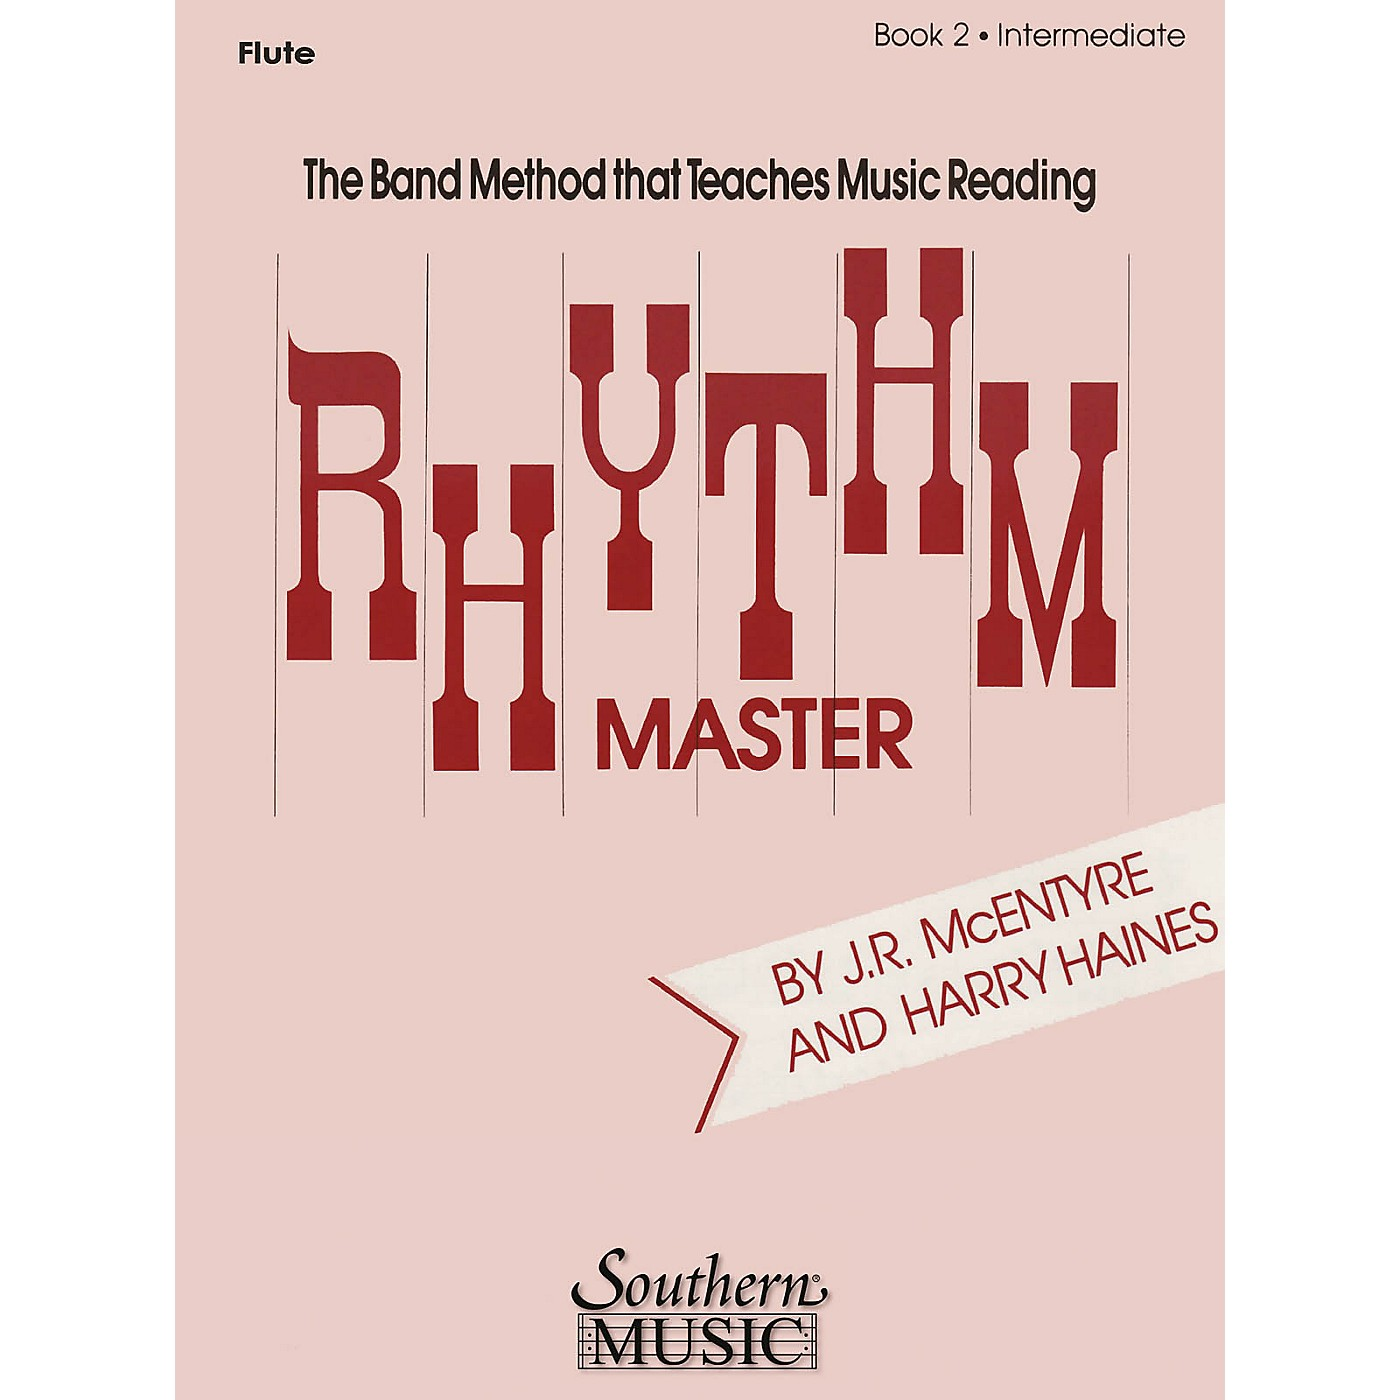 Southern Rhythm Master - Book 2 (Intermediate) (Tenor Saxophone) Southern Music Series  by Harry Haines thumbnail